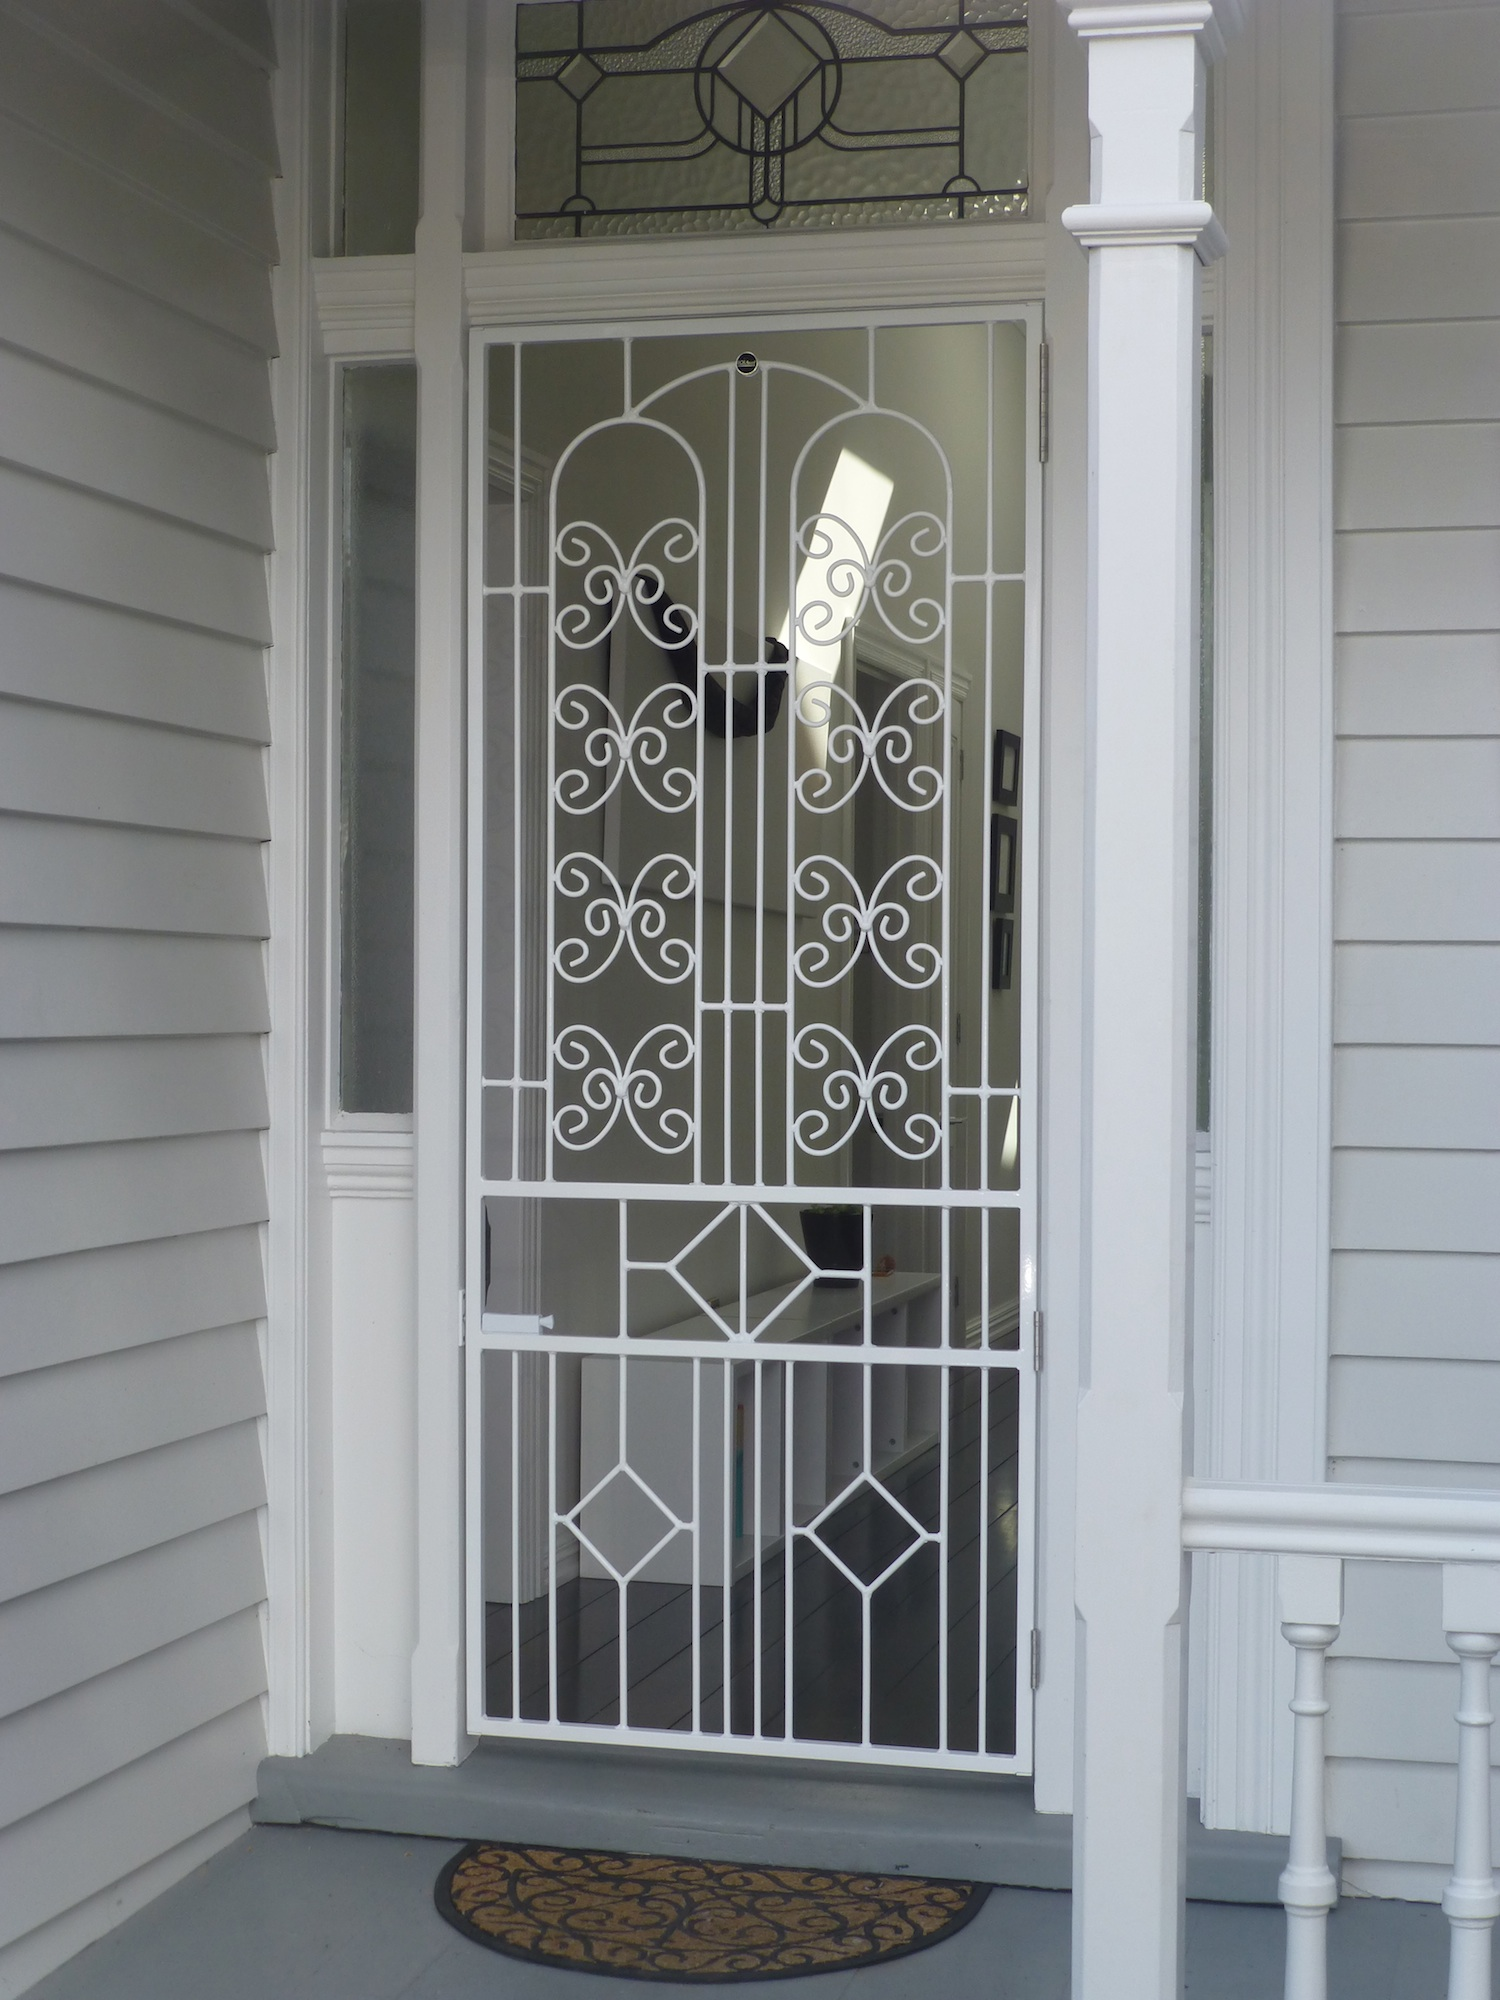 Dora doors designer security doors for Modern zen window grills design